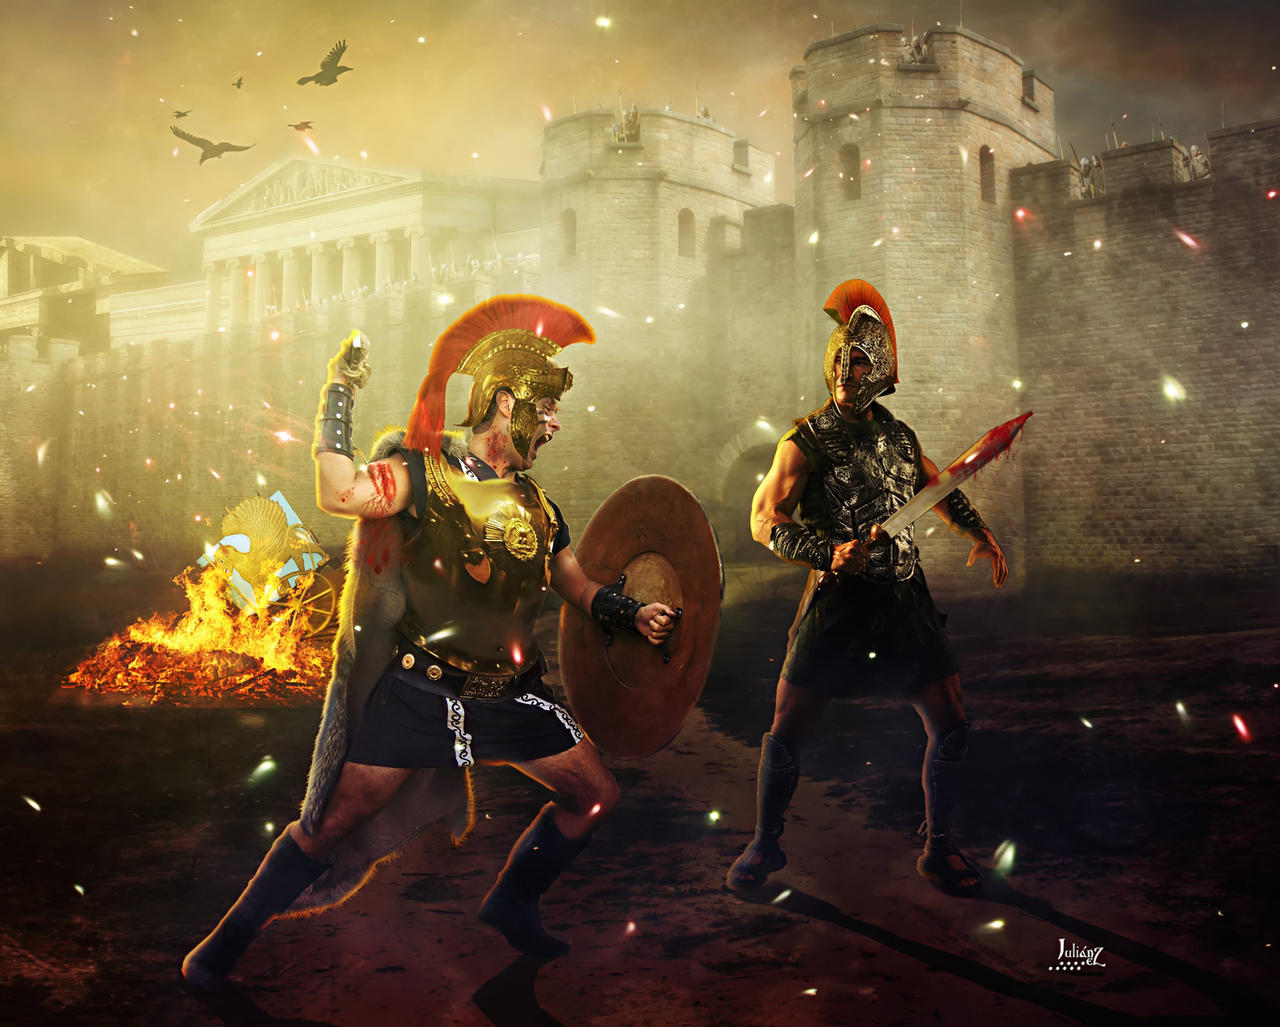 Achilles vs Prince Hector of Troy by Julianez on DeviantArt